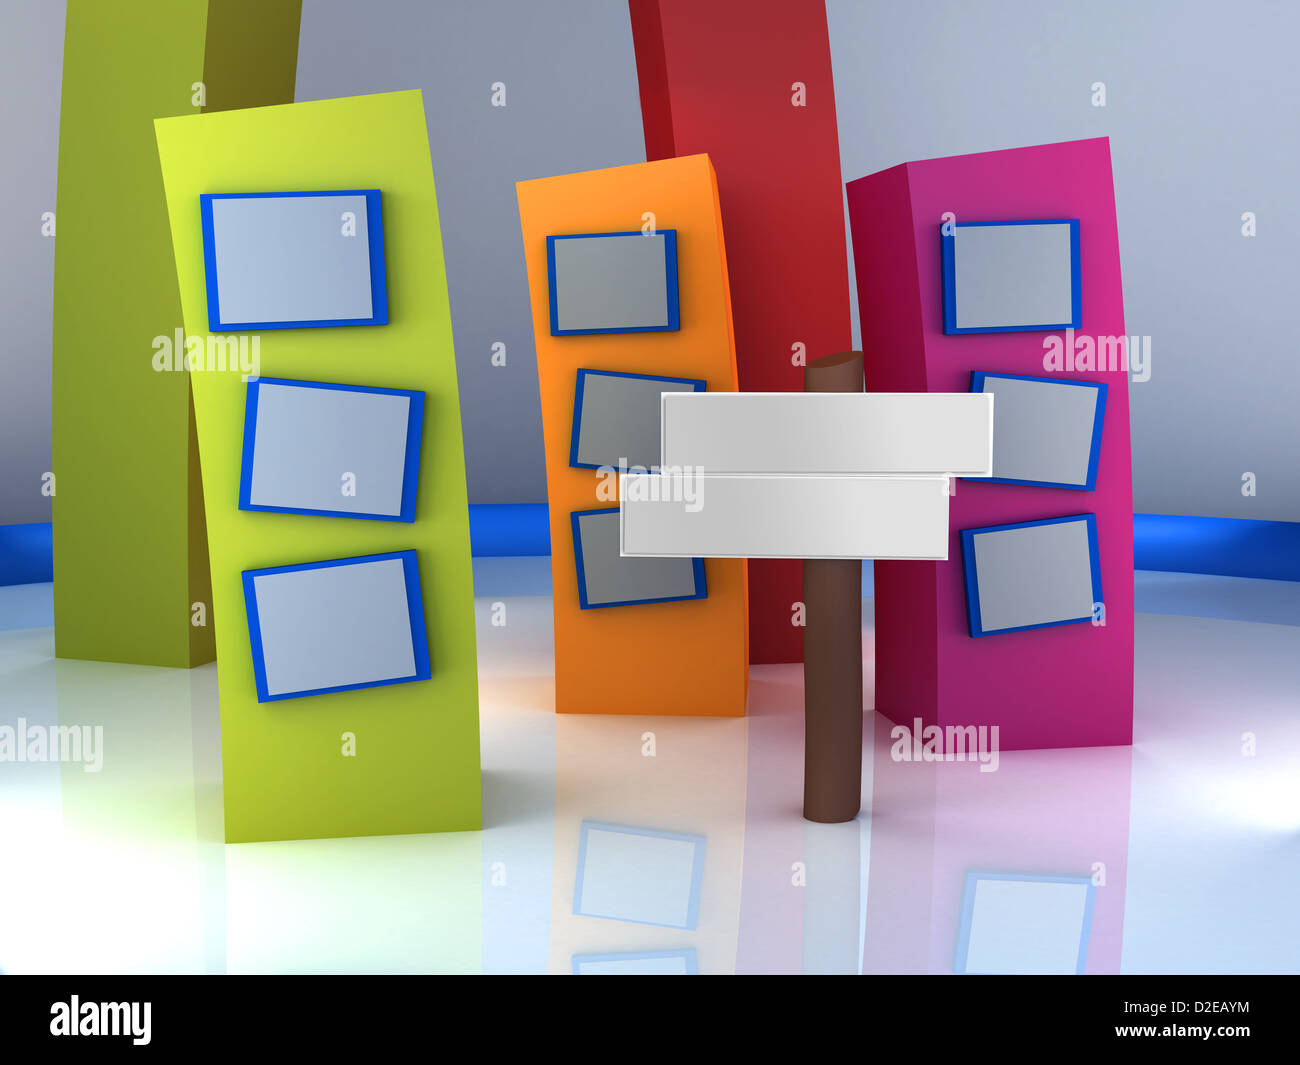 3d Studio Tv Virtual Set Stock Photo Royalty Free Image